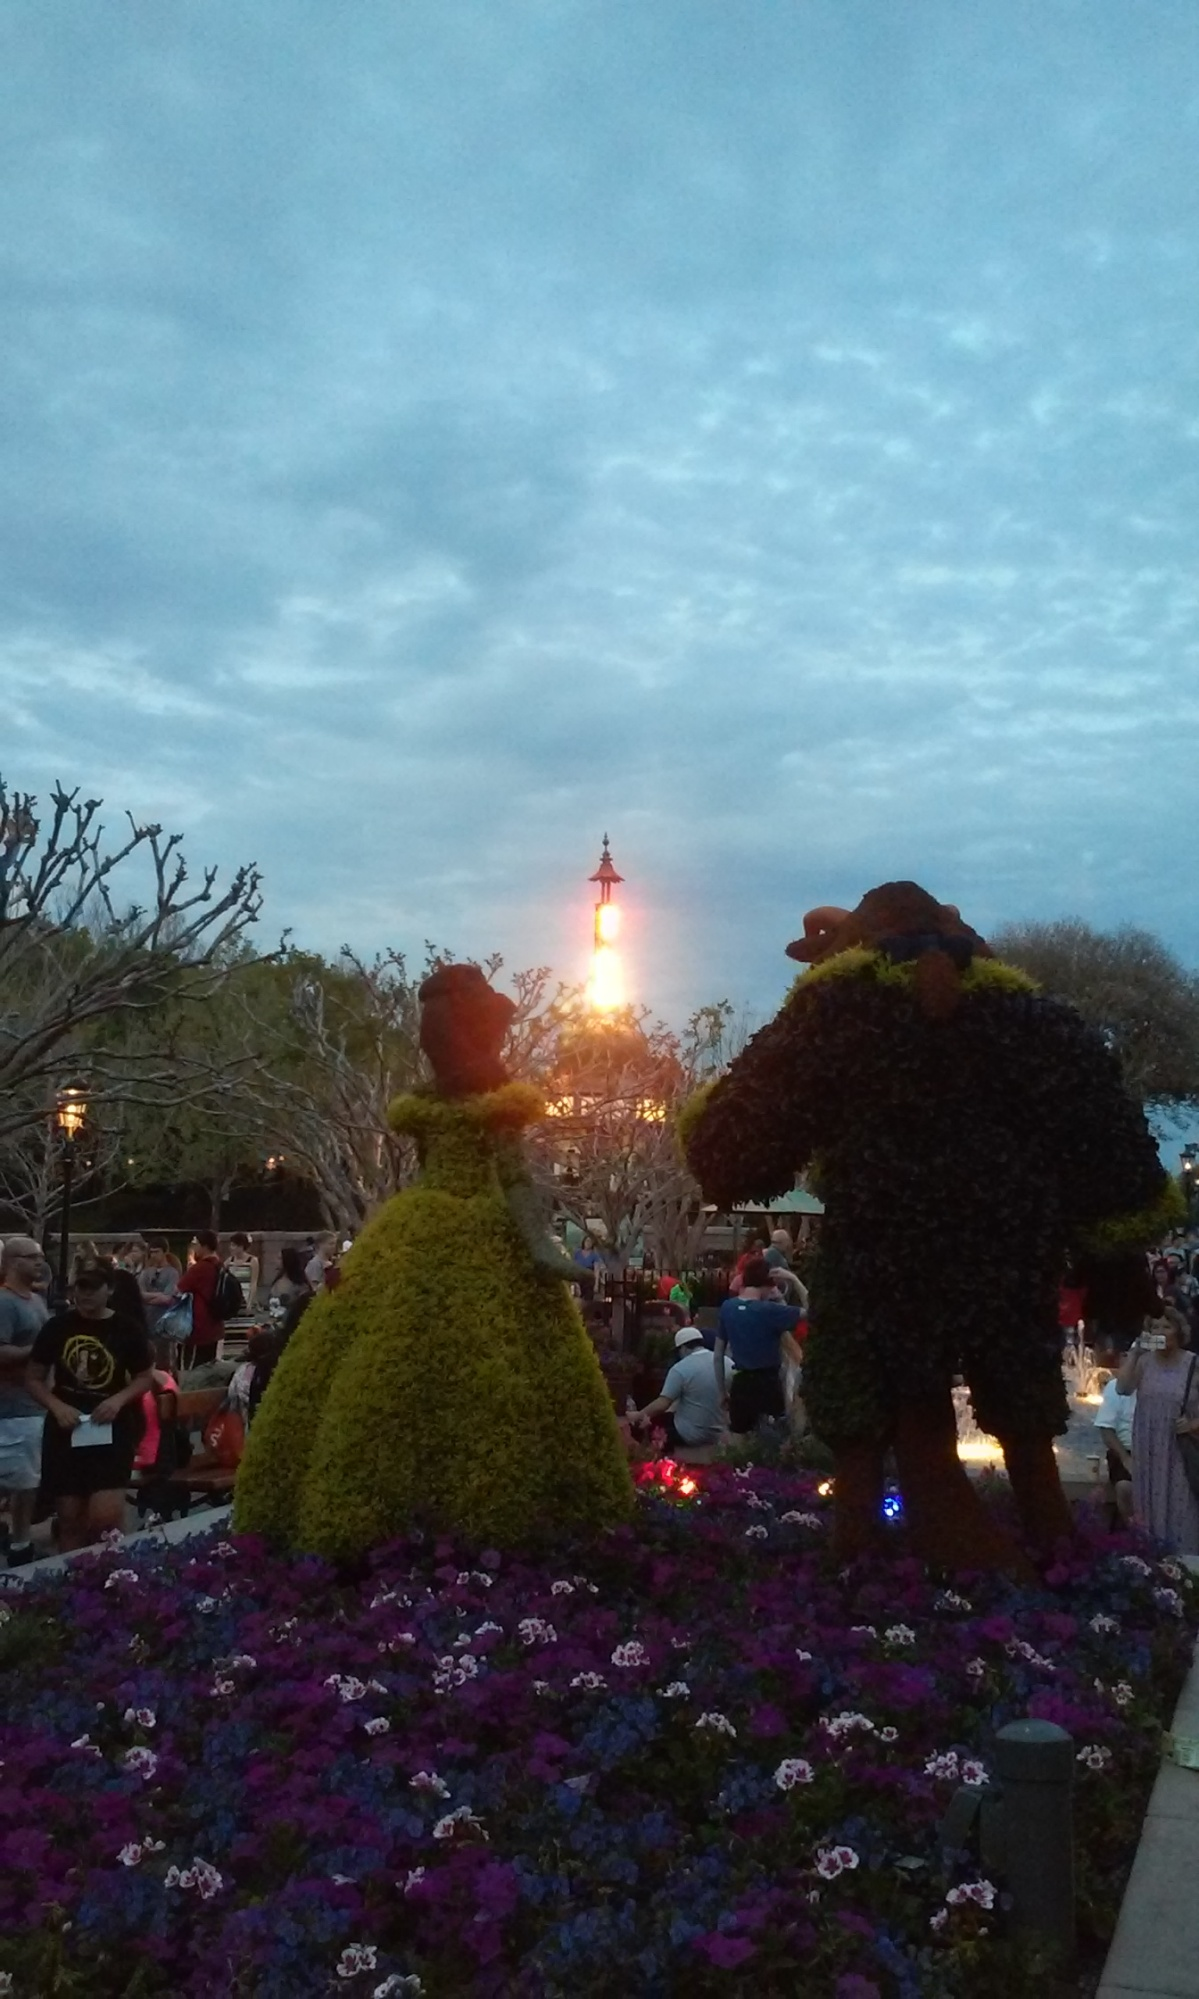 My top 5 favorite Disney pictures of taken! Disney Class is insession!